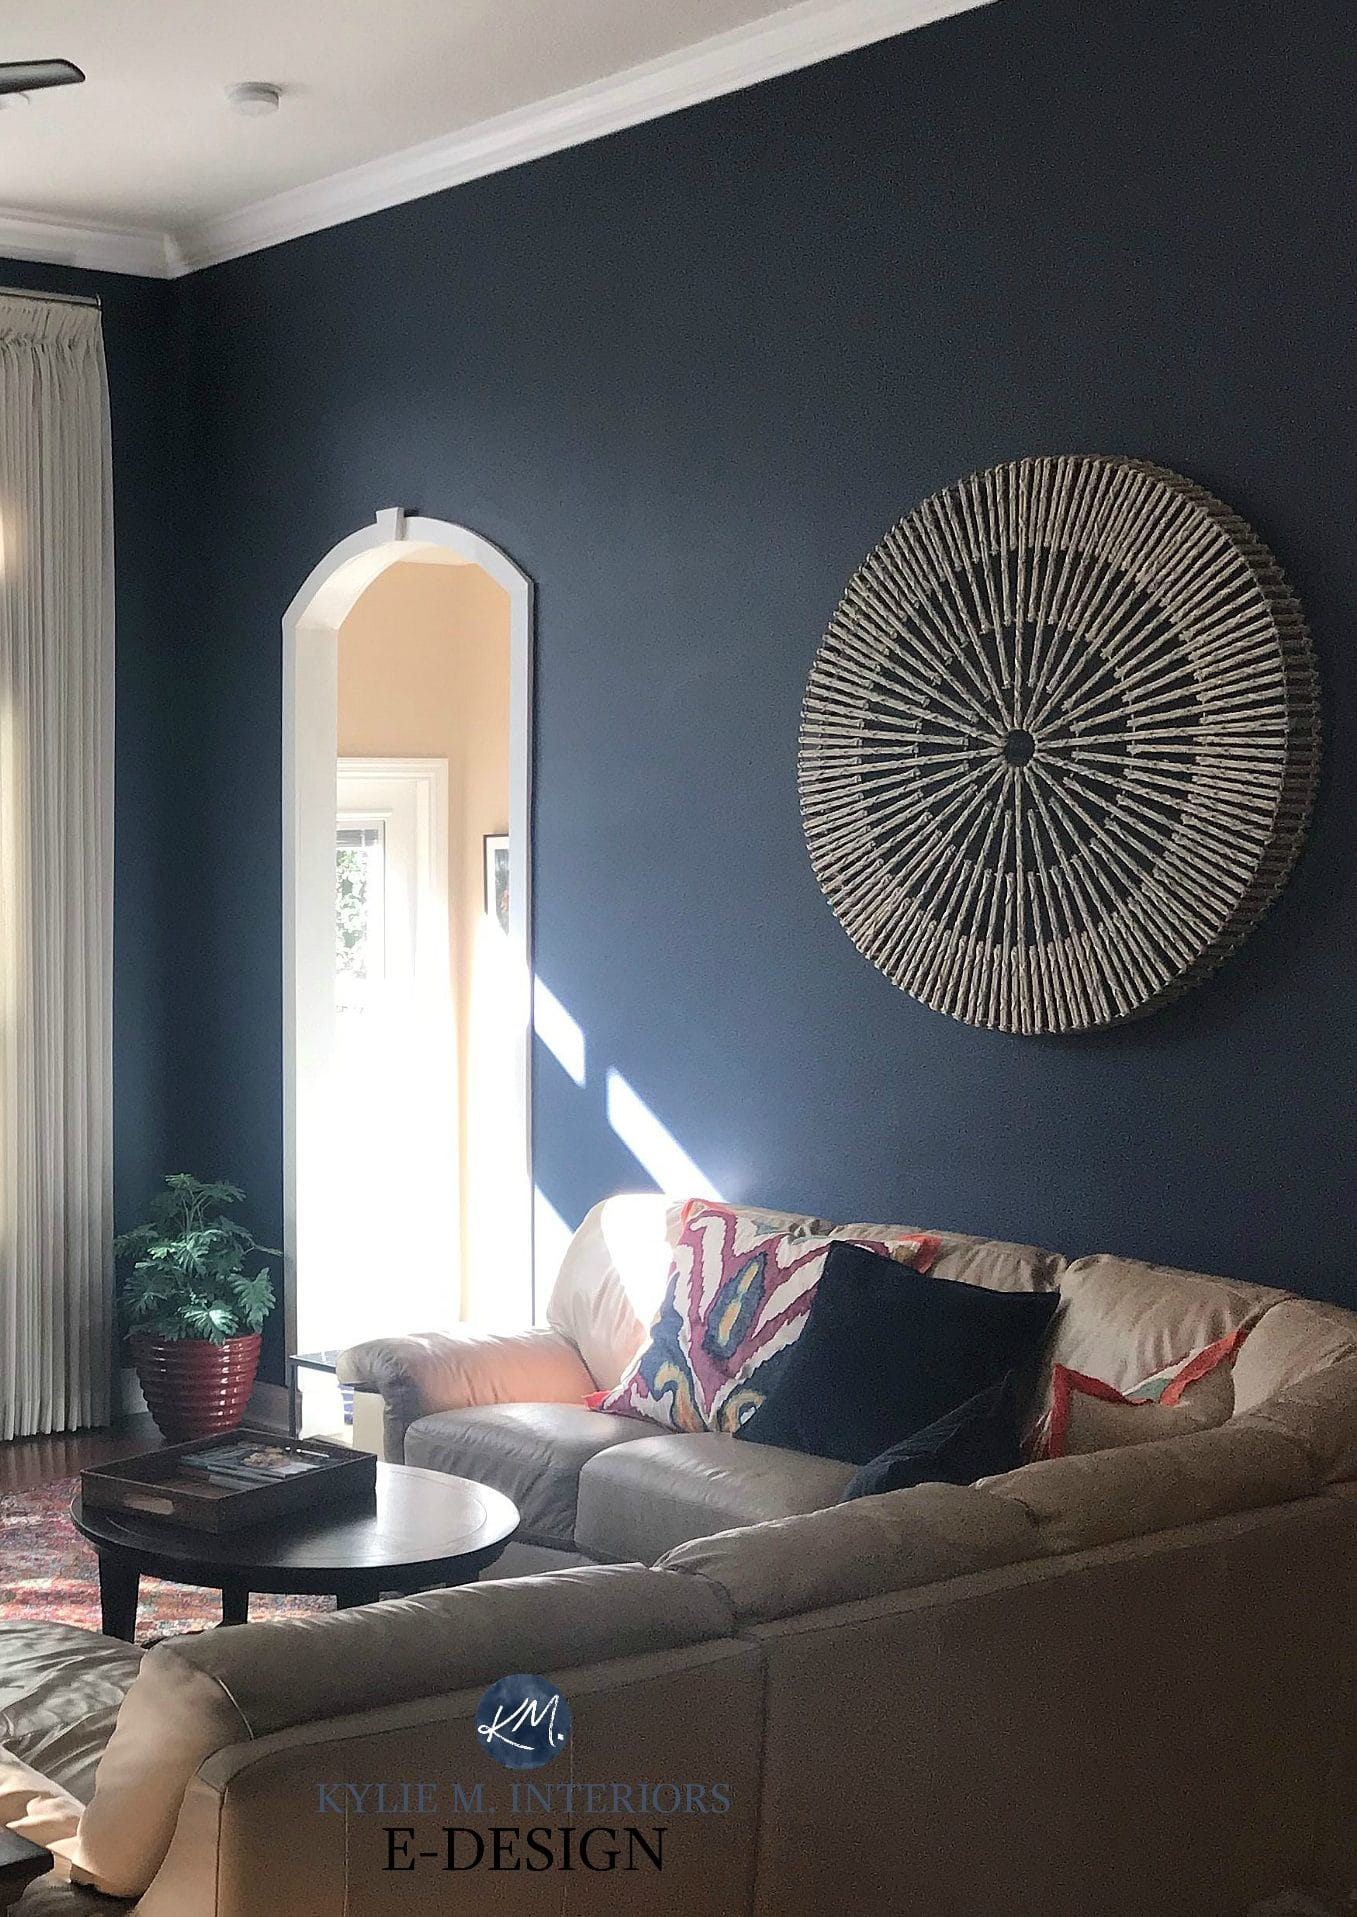 Benjamin Moore Hale Navy With Beige Sectional Best Dark Blue Paint Colour Kylie M Interiors Edesign Online Color Consultant